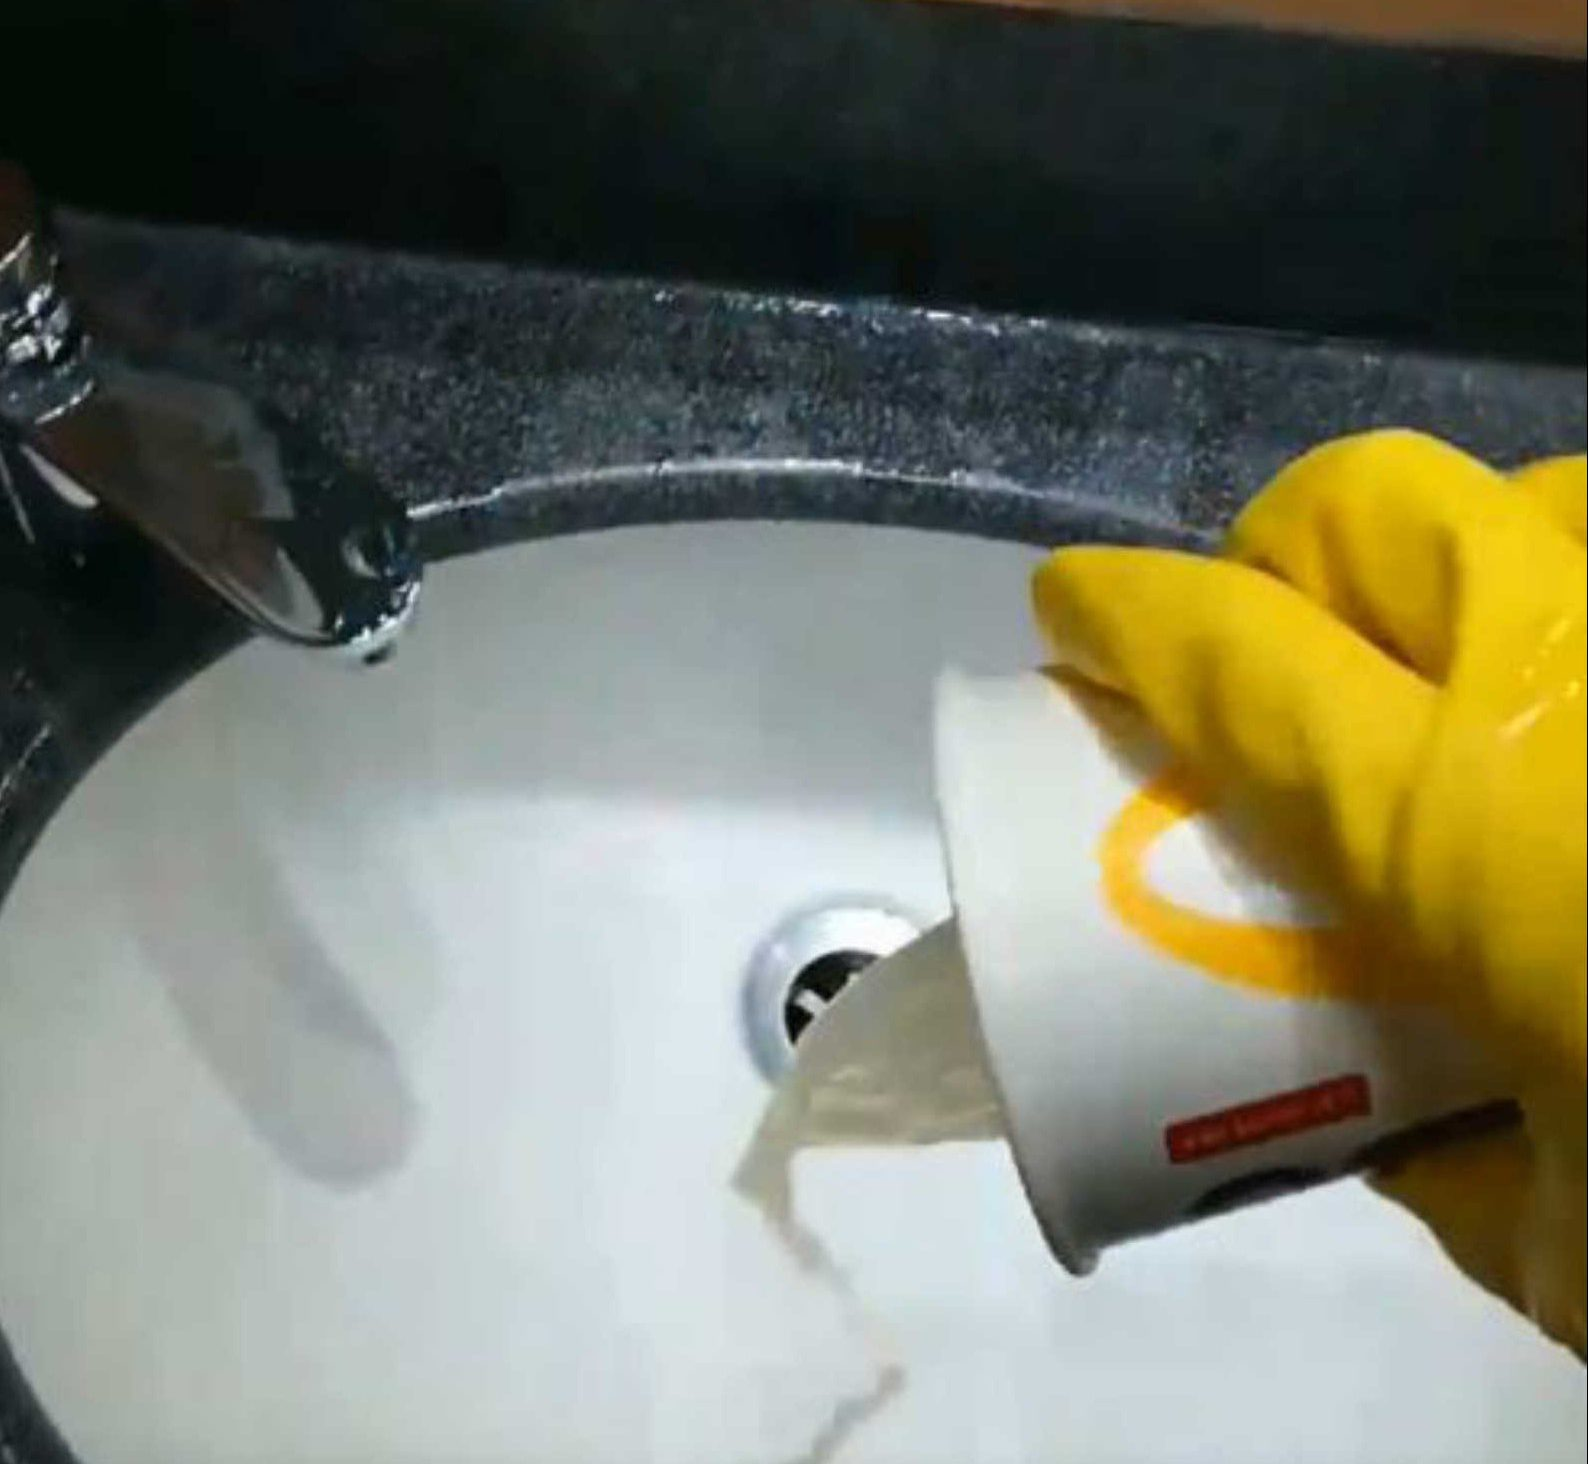 DISGUSTING footage shows how a McDonald?s employee was instructed to scoop urine out of a blocked urinal with a paper cup. Kayleigh Greatorex filmed herself as she filled the McDonald's cup and then emptied the contents in the sink inside the customer toilets. McDonald's today admitted that the stomach-churning incident at one of their London stores breached policy as was being investigated. Mum-of-one Kayleigh, 20, said the incident happened while she was working at the Tower Retail Park in Crayford, Bexley, last year. Kayleigh, who resigned shortly afterwards, said she was specifically told to empty the cup into the sink. The short video shows her wearing yellow rubber gloves and holding a McDonald?s cup. She is then seen scooping the contents of the obviously blocked urinal into the cup. She then turns and empties the contents into a sink behind.